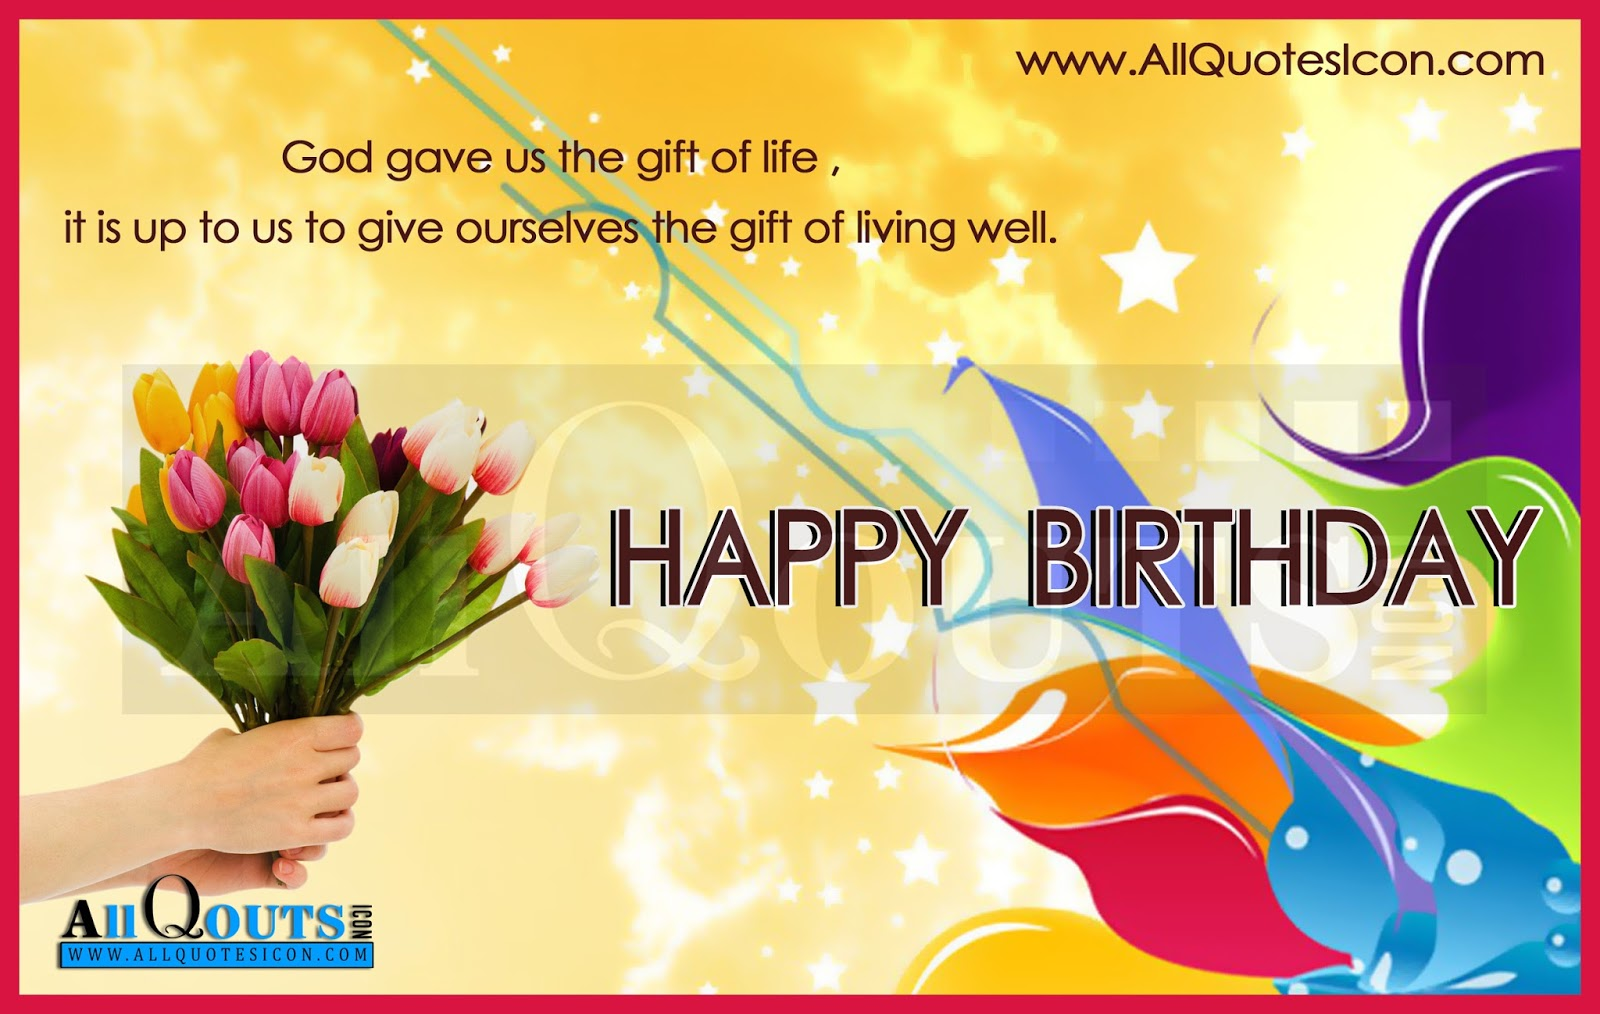 Happy Birthday Quotes English ~ Happy birthday quotes and images best greetings english